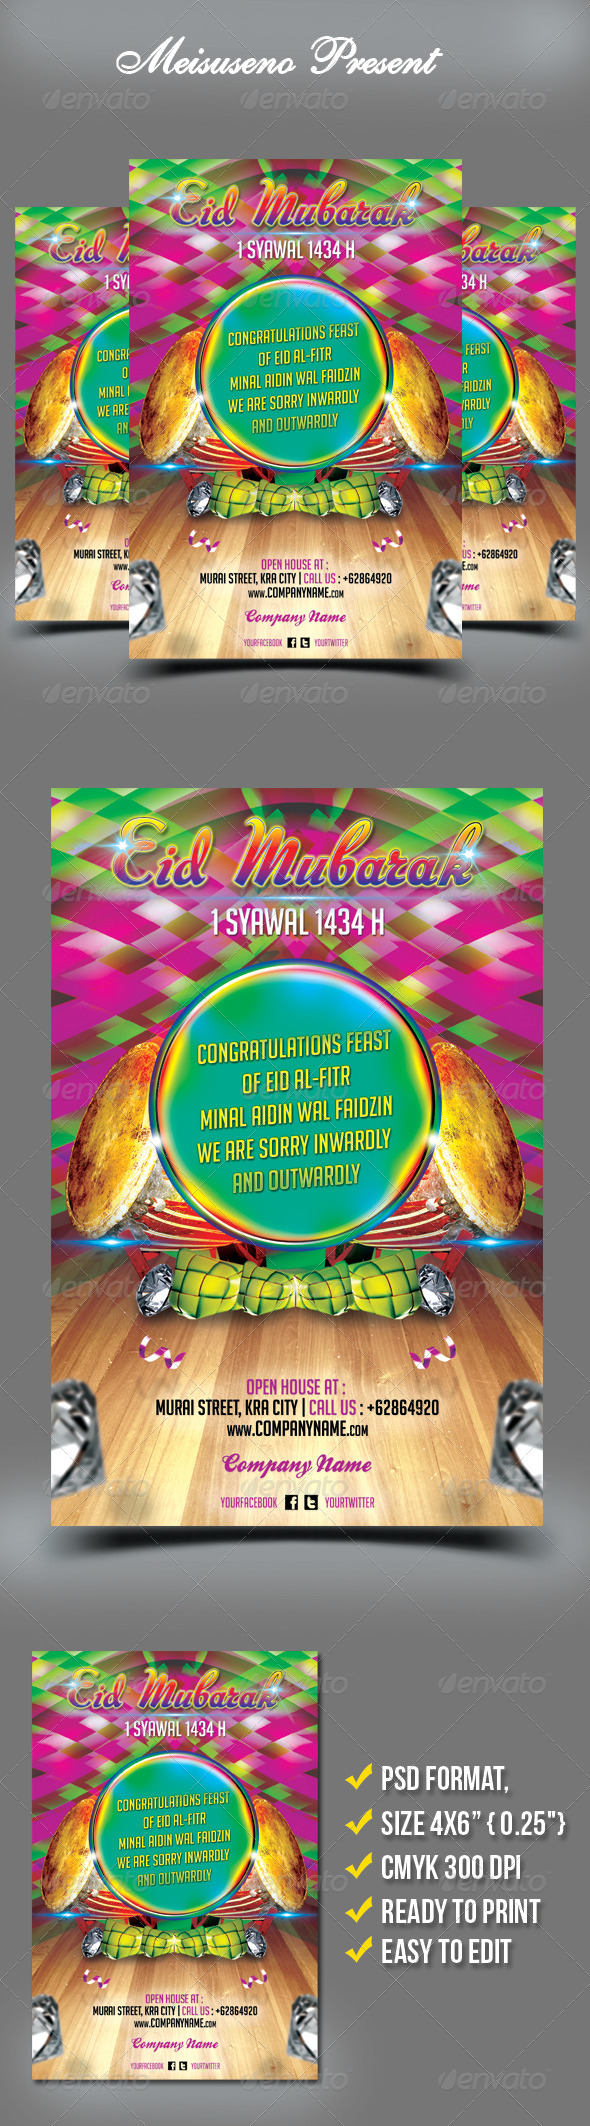 Eid Mubarak Flyer/Greeting Card - Miscellaneous Events